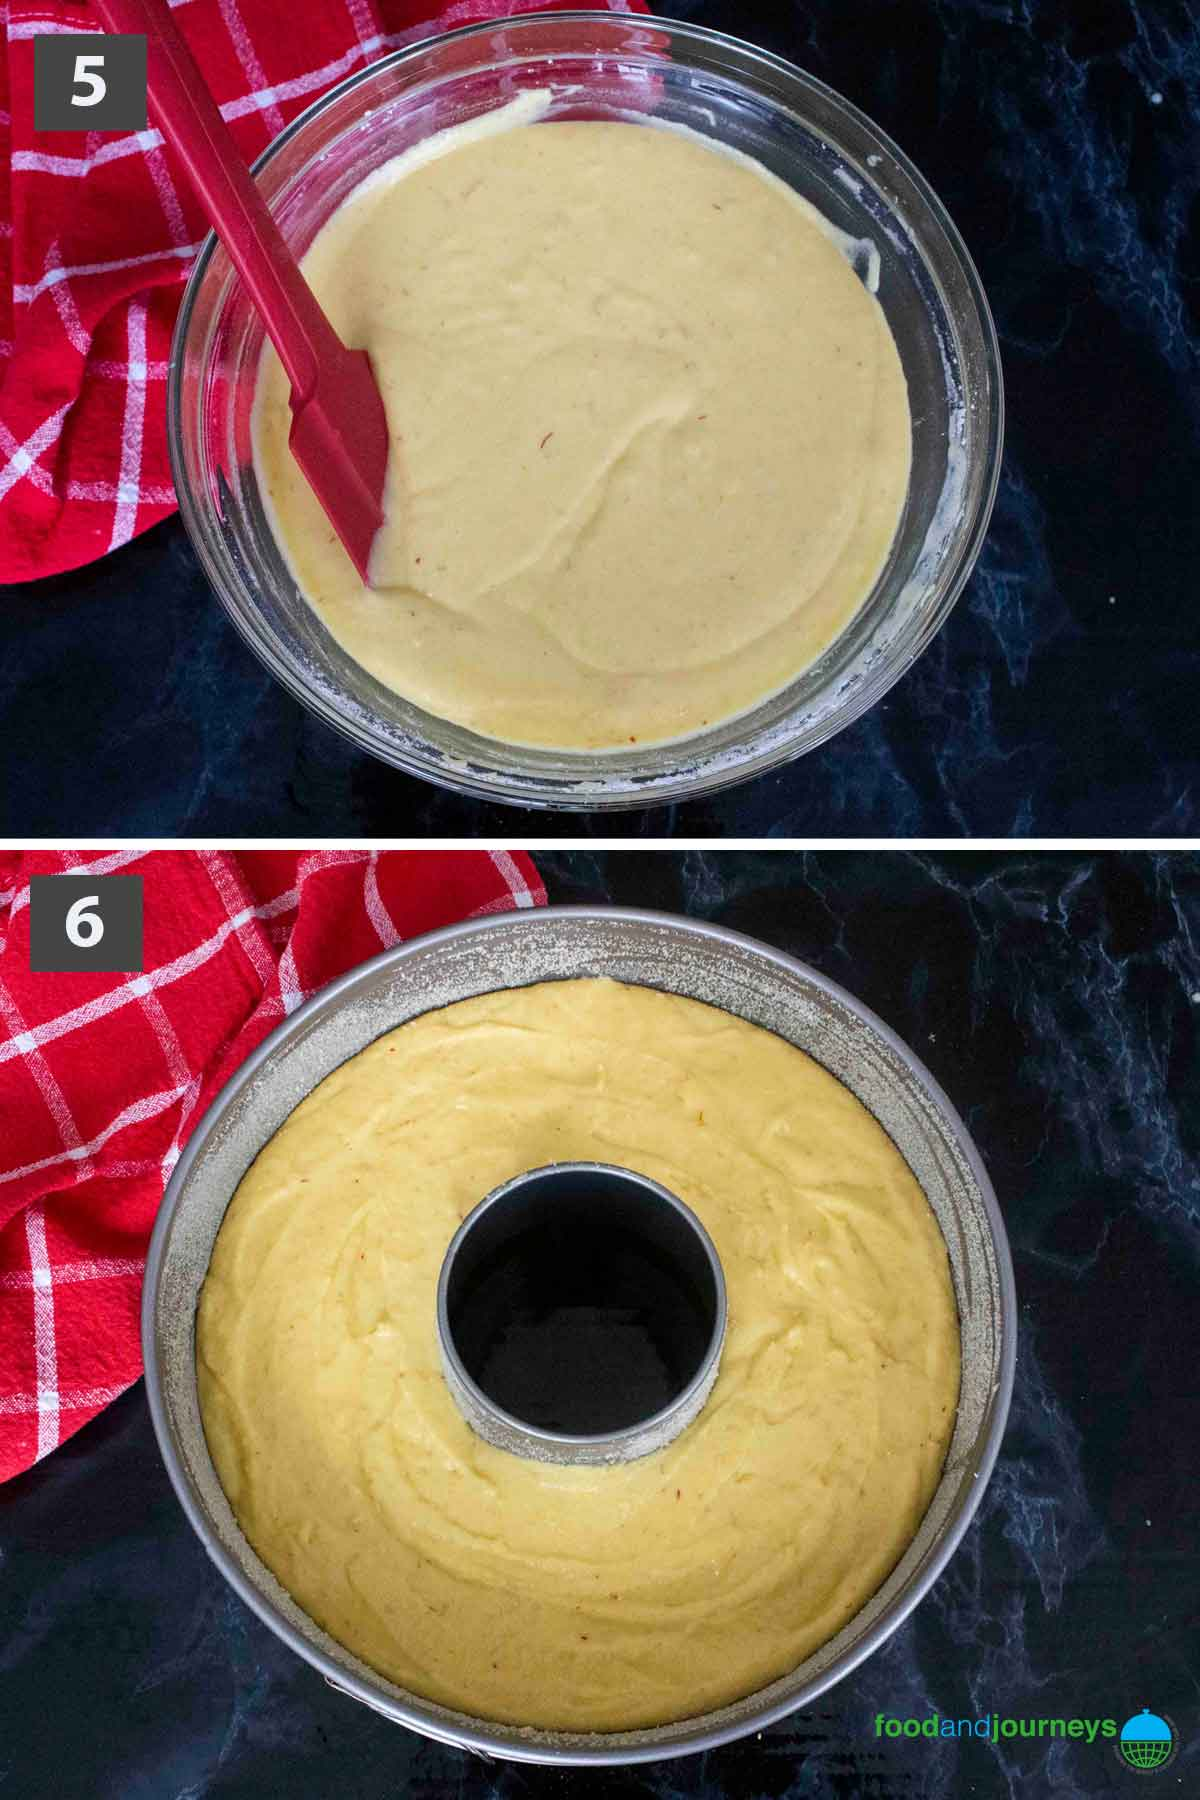 Second part of a collage of images showing the step by step process on how to make Swedish Saffron Cake.